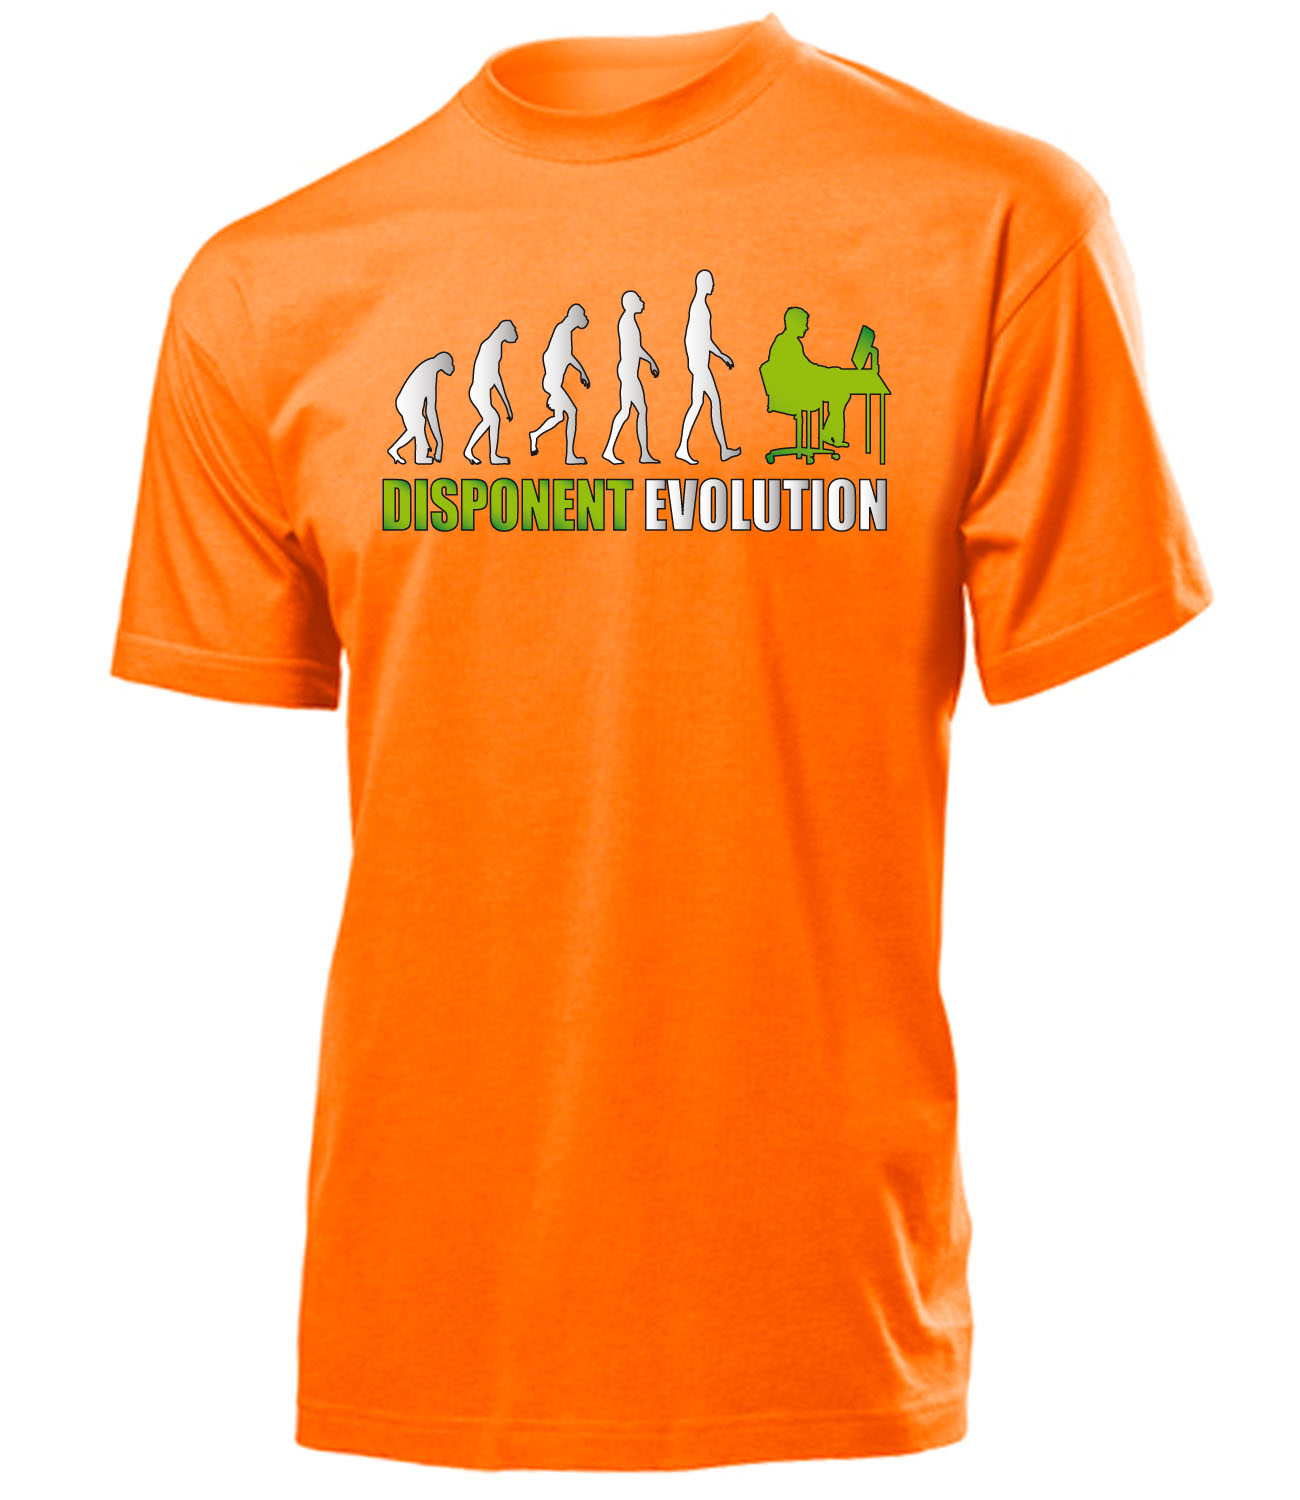 disponent evolution t shirt herren s xxl ebay. Black Bedroom Furniture Sets. Home Design Ideas